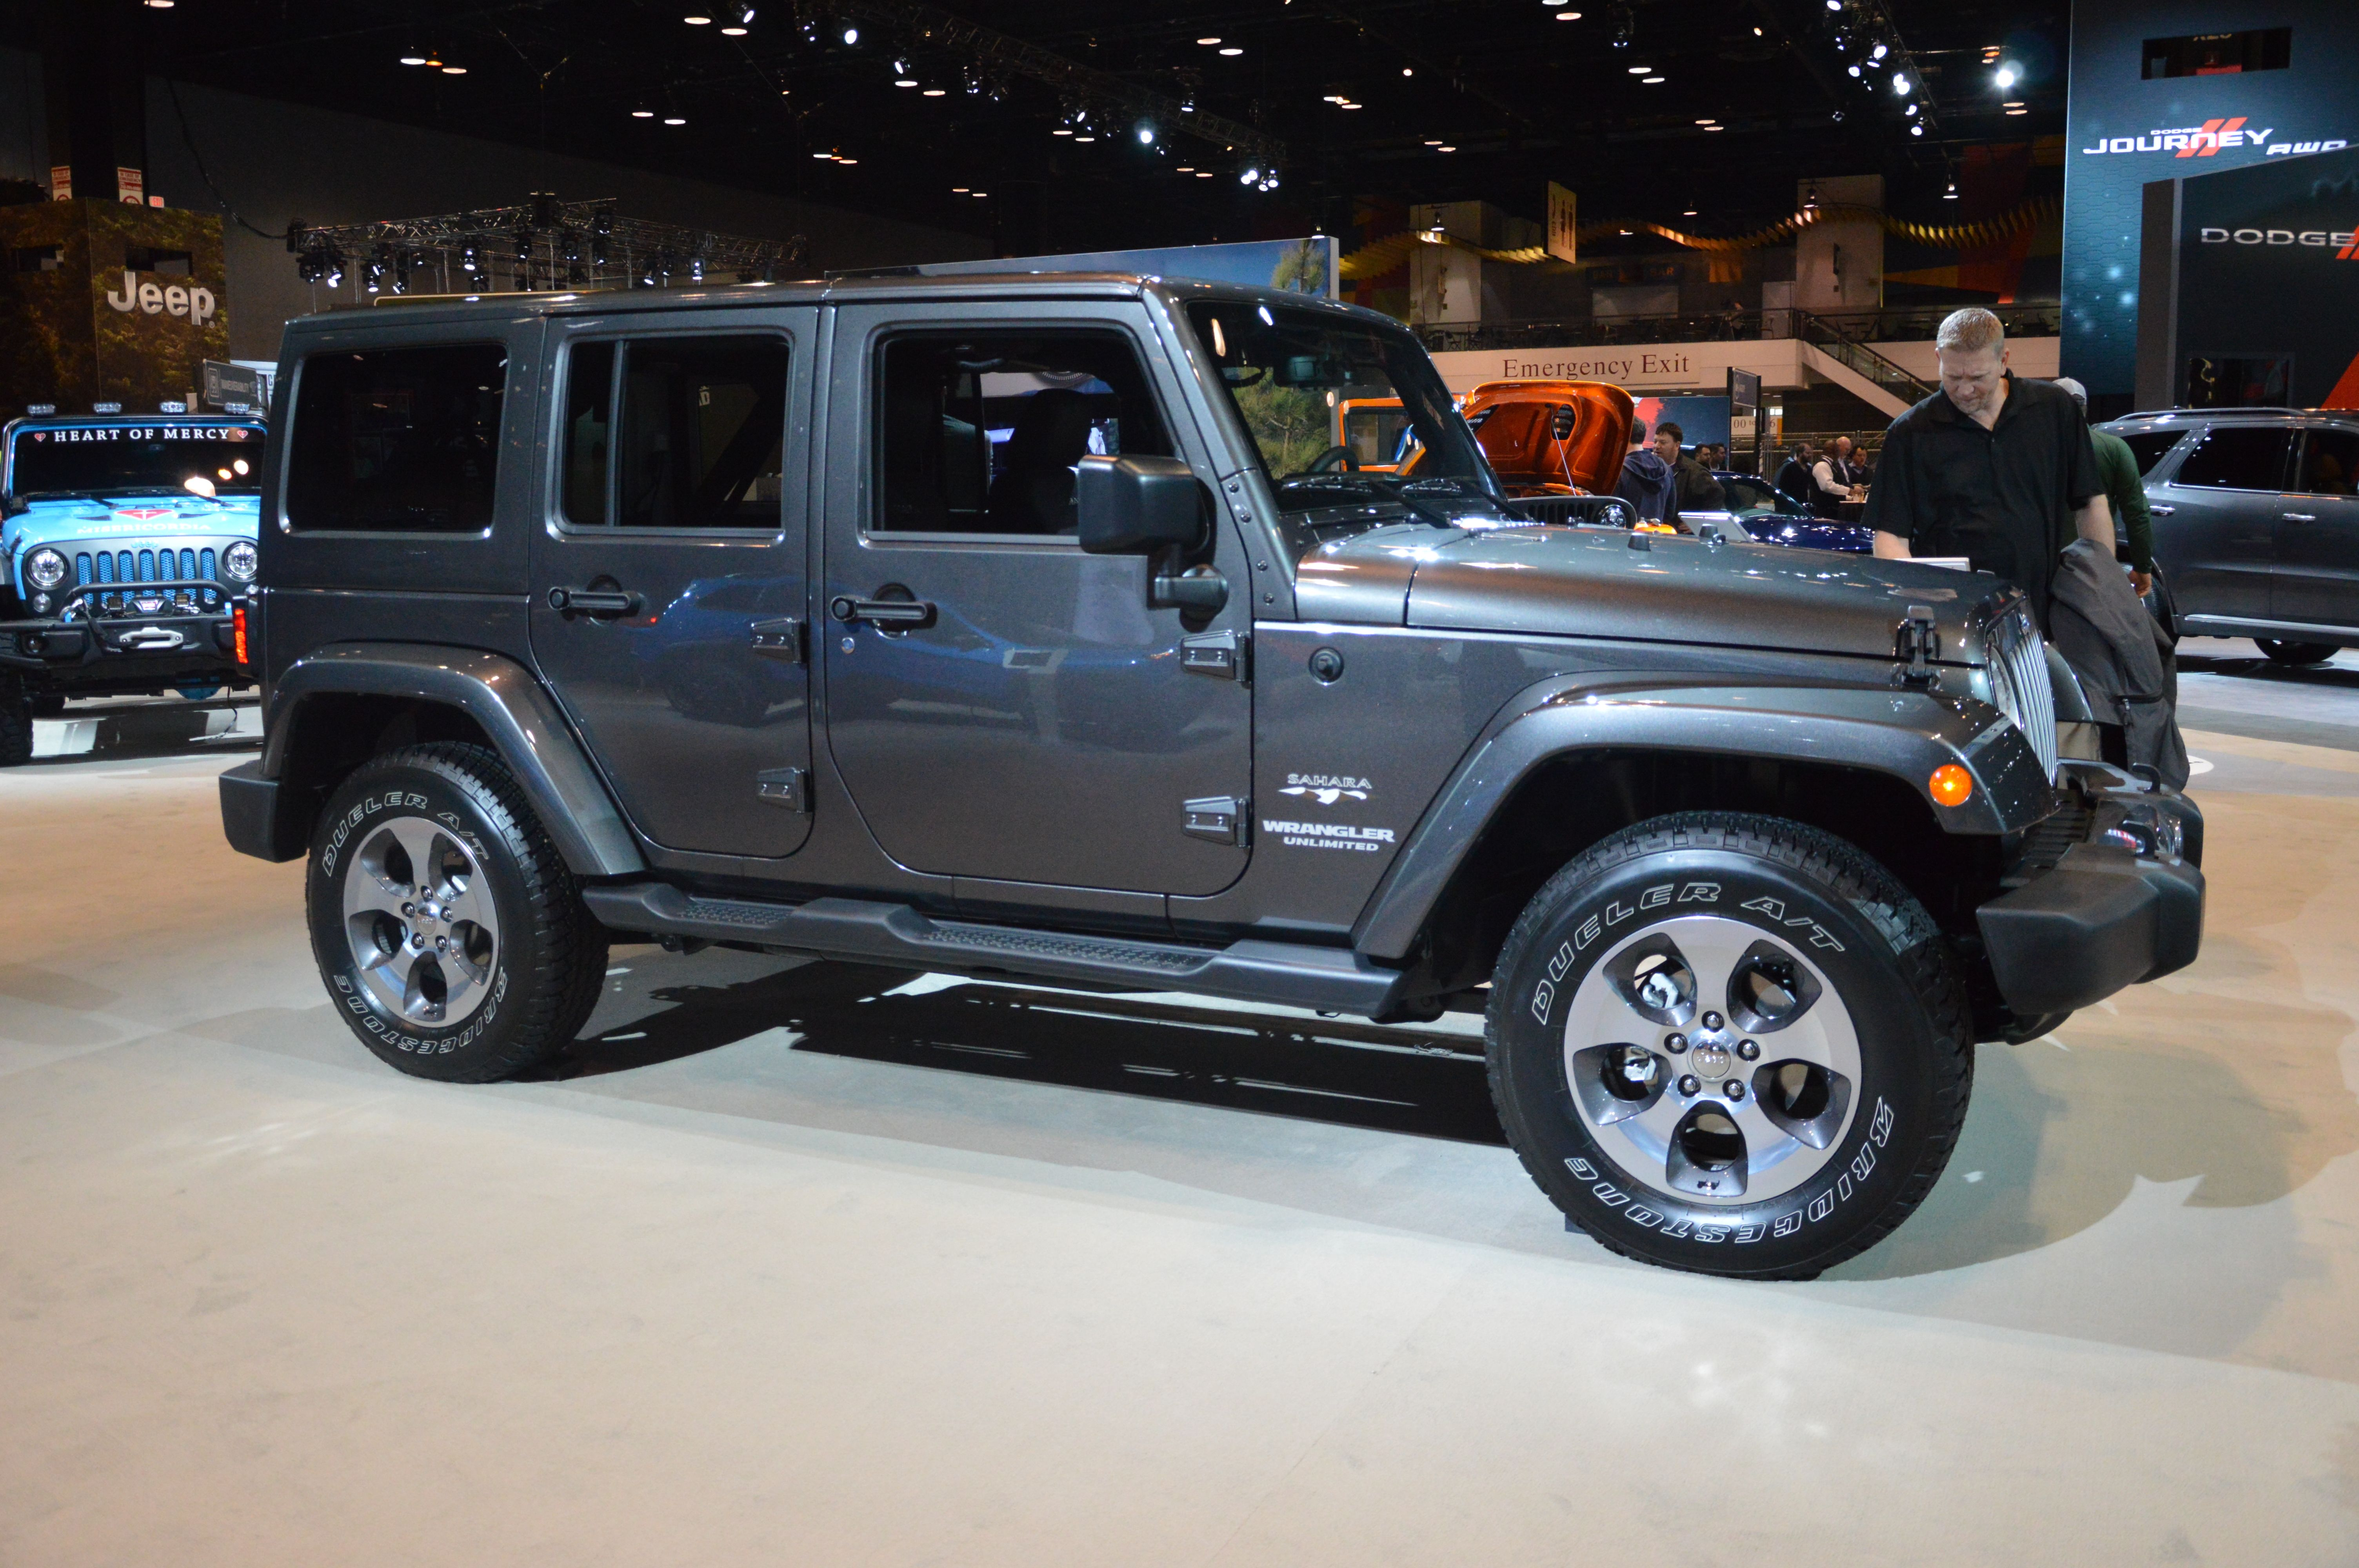 rubicon wrangler ev nissan chevy recon jeep its self what bolt news capable driving unlimited most ever s builds leaf h